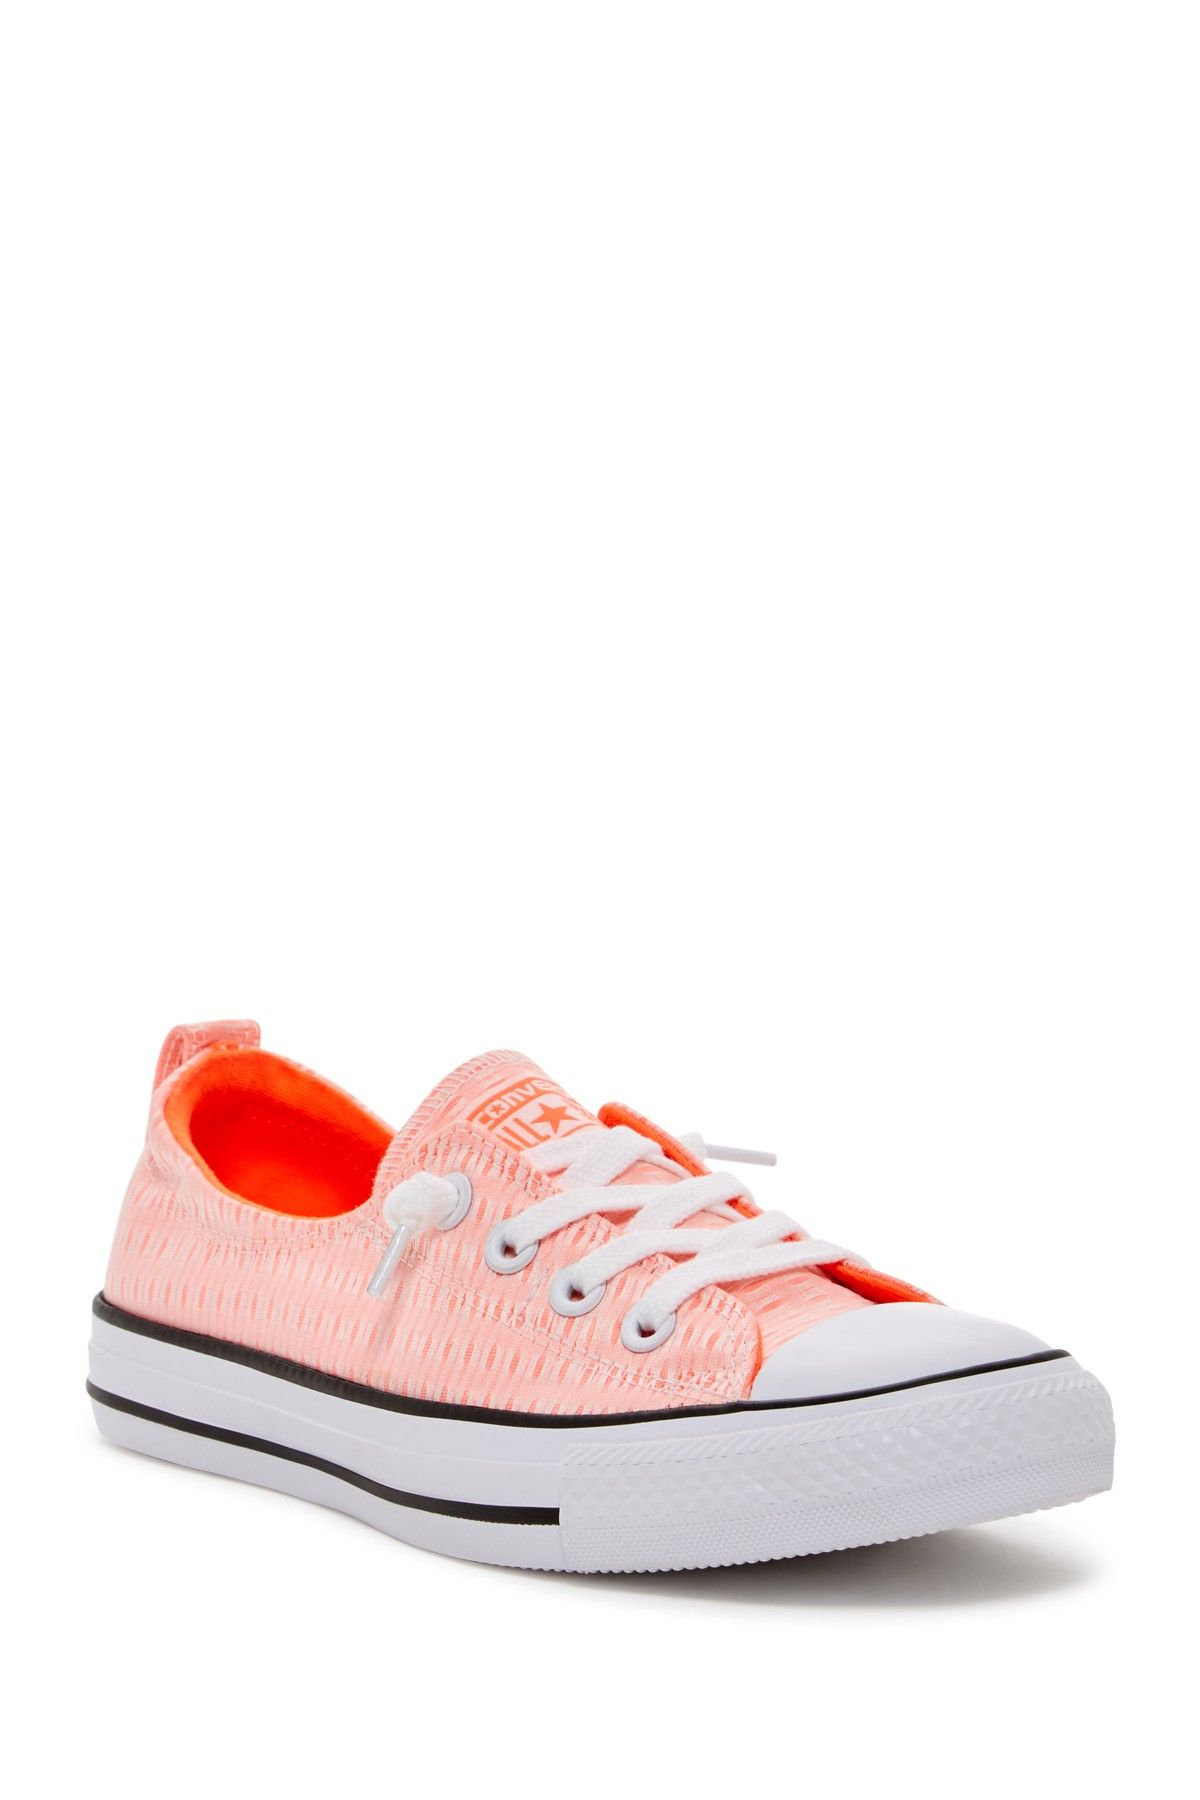 b454f8f0c79b55 Chuck Taylor All Star Shoreline Slip Sneaker (Women) by Converse on   nordstrom rack